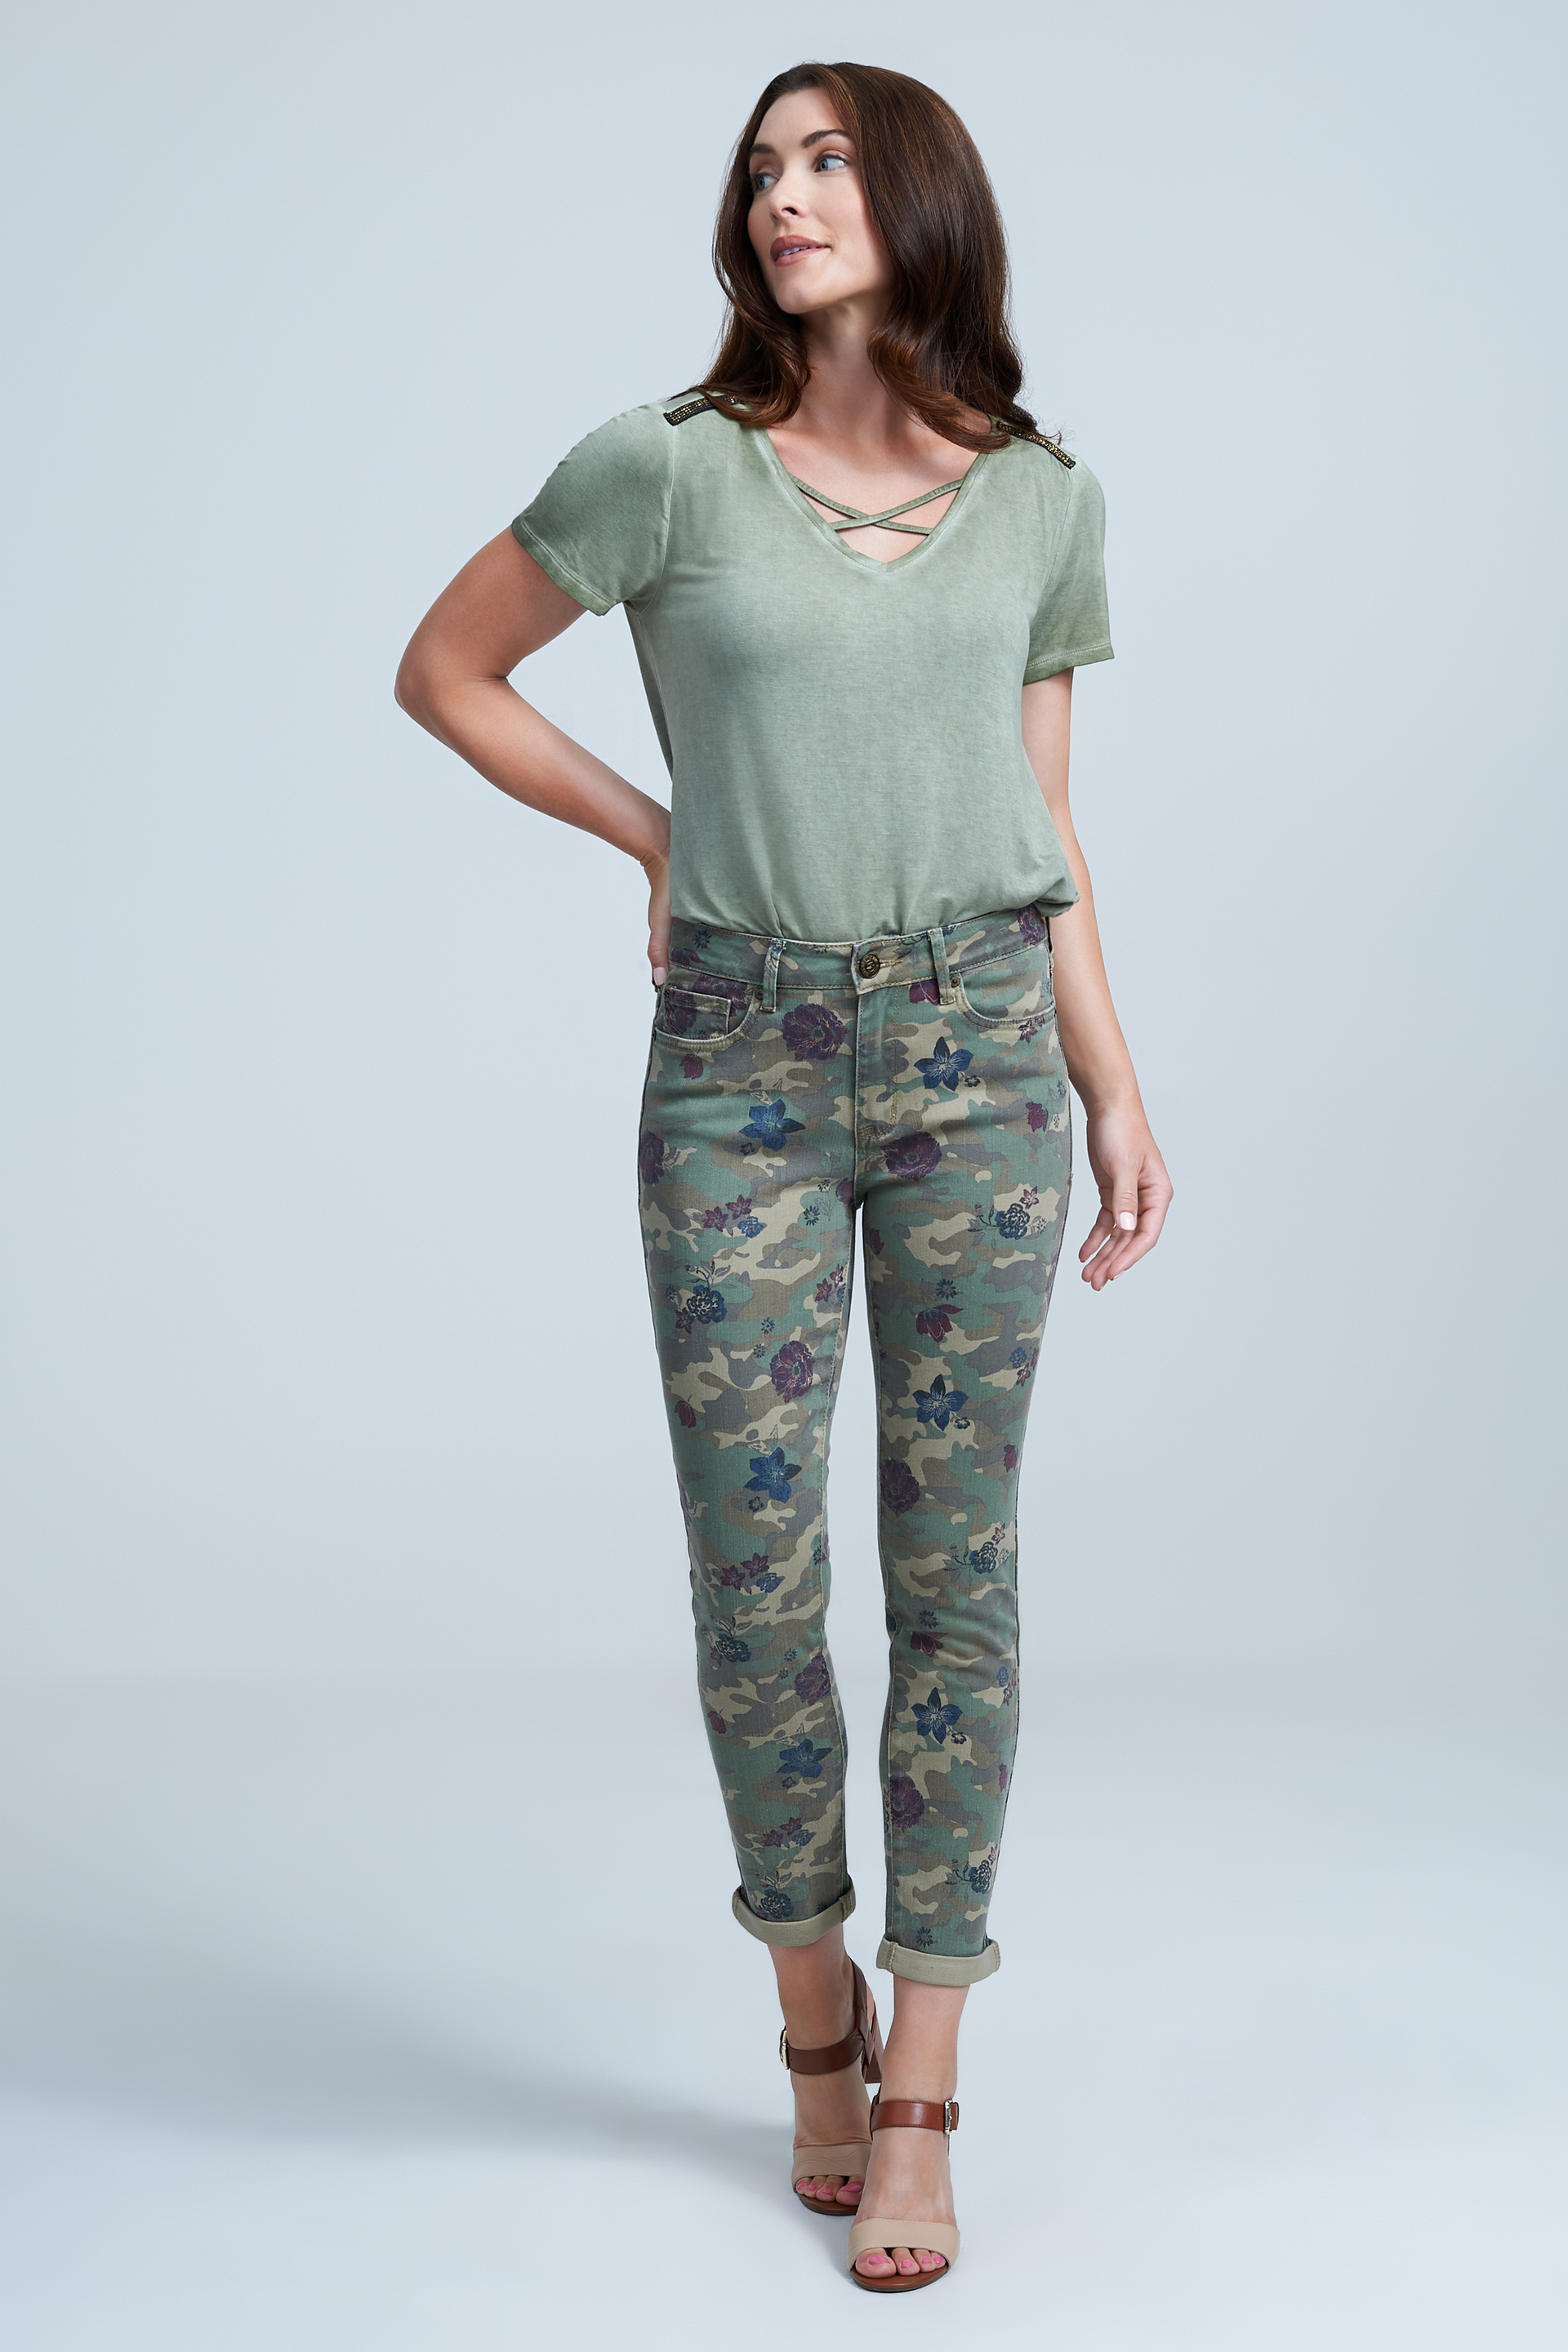 Seven7 Jeans High Rise Slim Straight Camo Jean <p>A cool camo pattern updates this slim-straight jean cut with a flattering high rise. Featuring classic five-pocket styling, the pair comes in denim featuring slight stretch for a sleek shape that feels great on the body.</p>